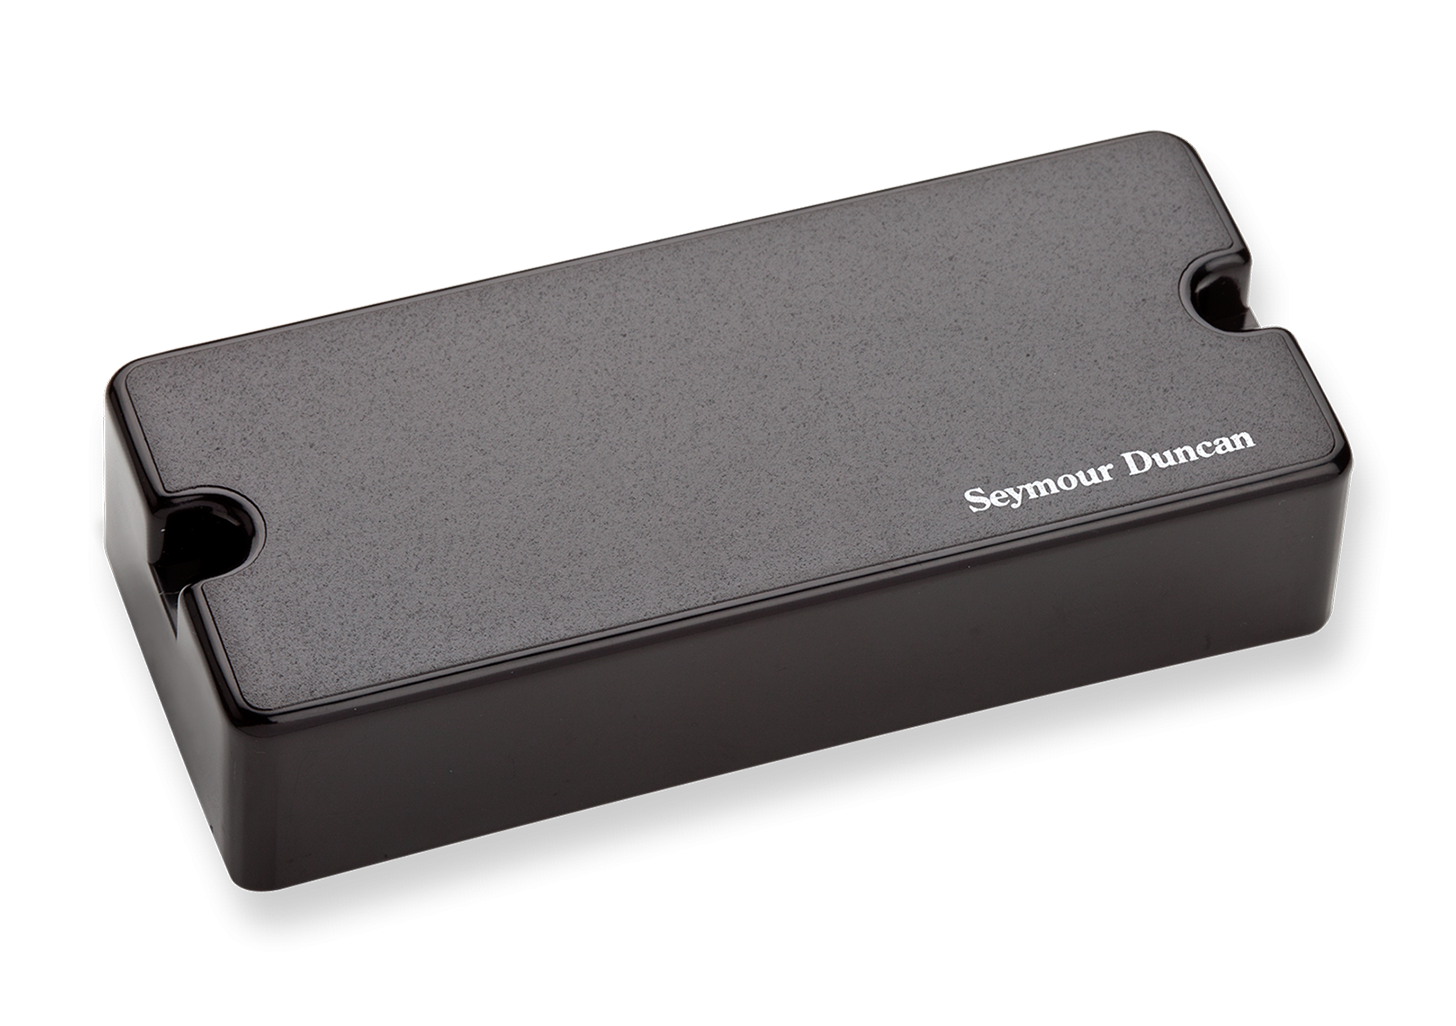 Seymour Duncan Blackouts AHB-1N 7 String Phase II Active Mount Neck